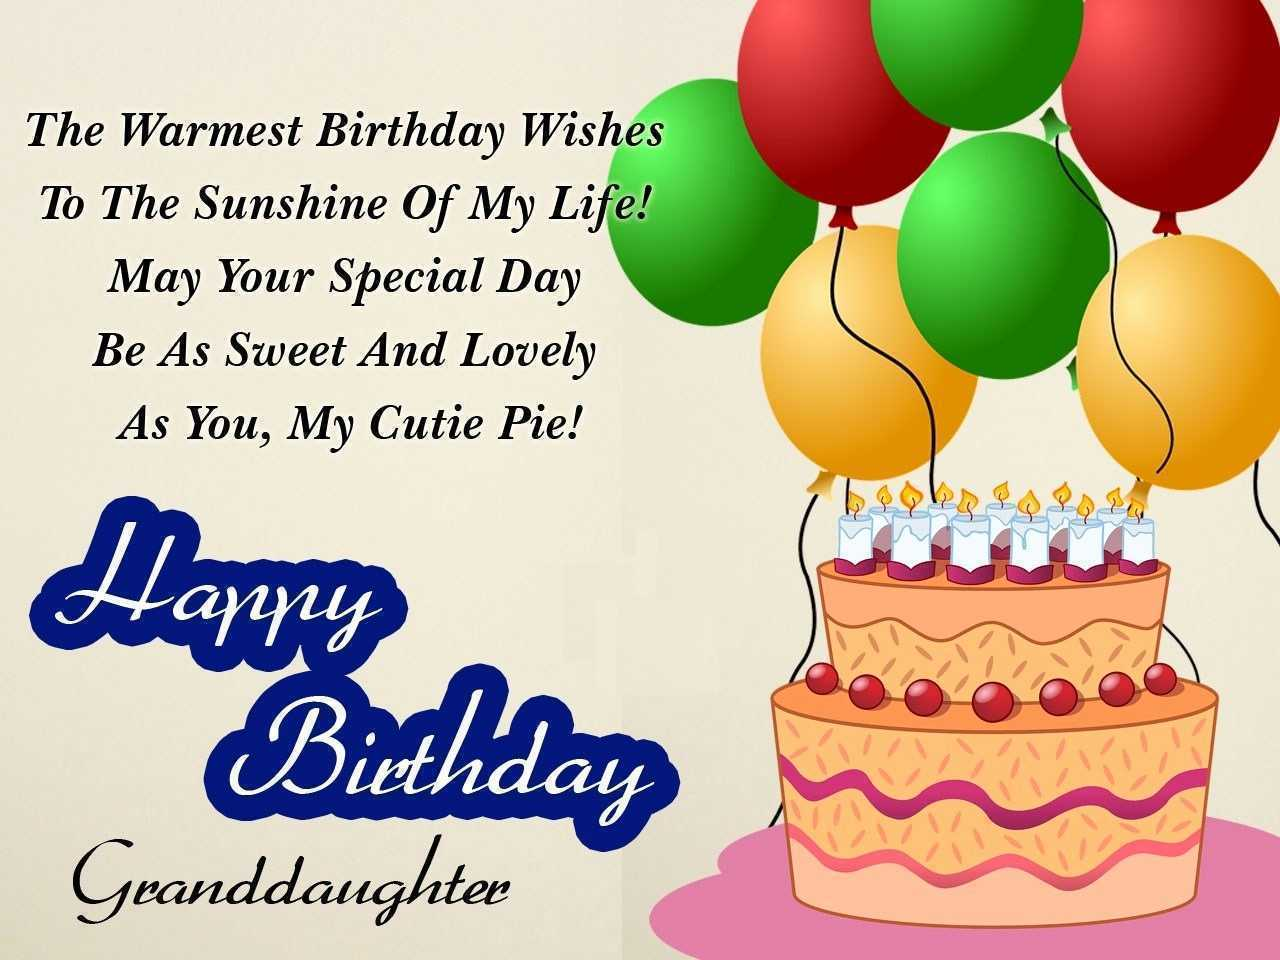 happy birthday to my granddaughter images ; happy-birthday-to-my-granddaughter-images-inspirational-birthday-wishes-for-granddaughter-happy-bday-of-happy-birthday-to-my-granddaughter-images